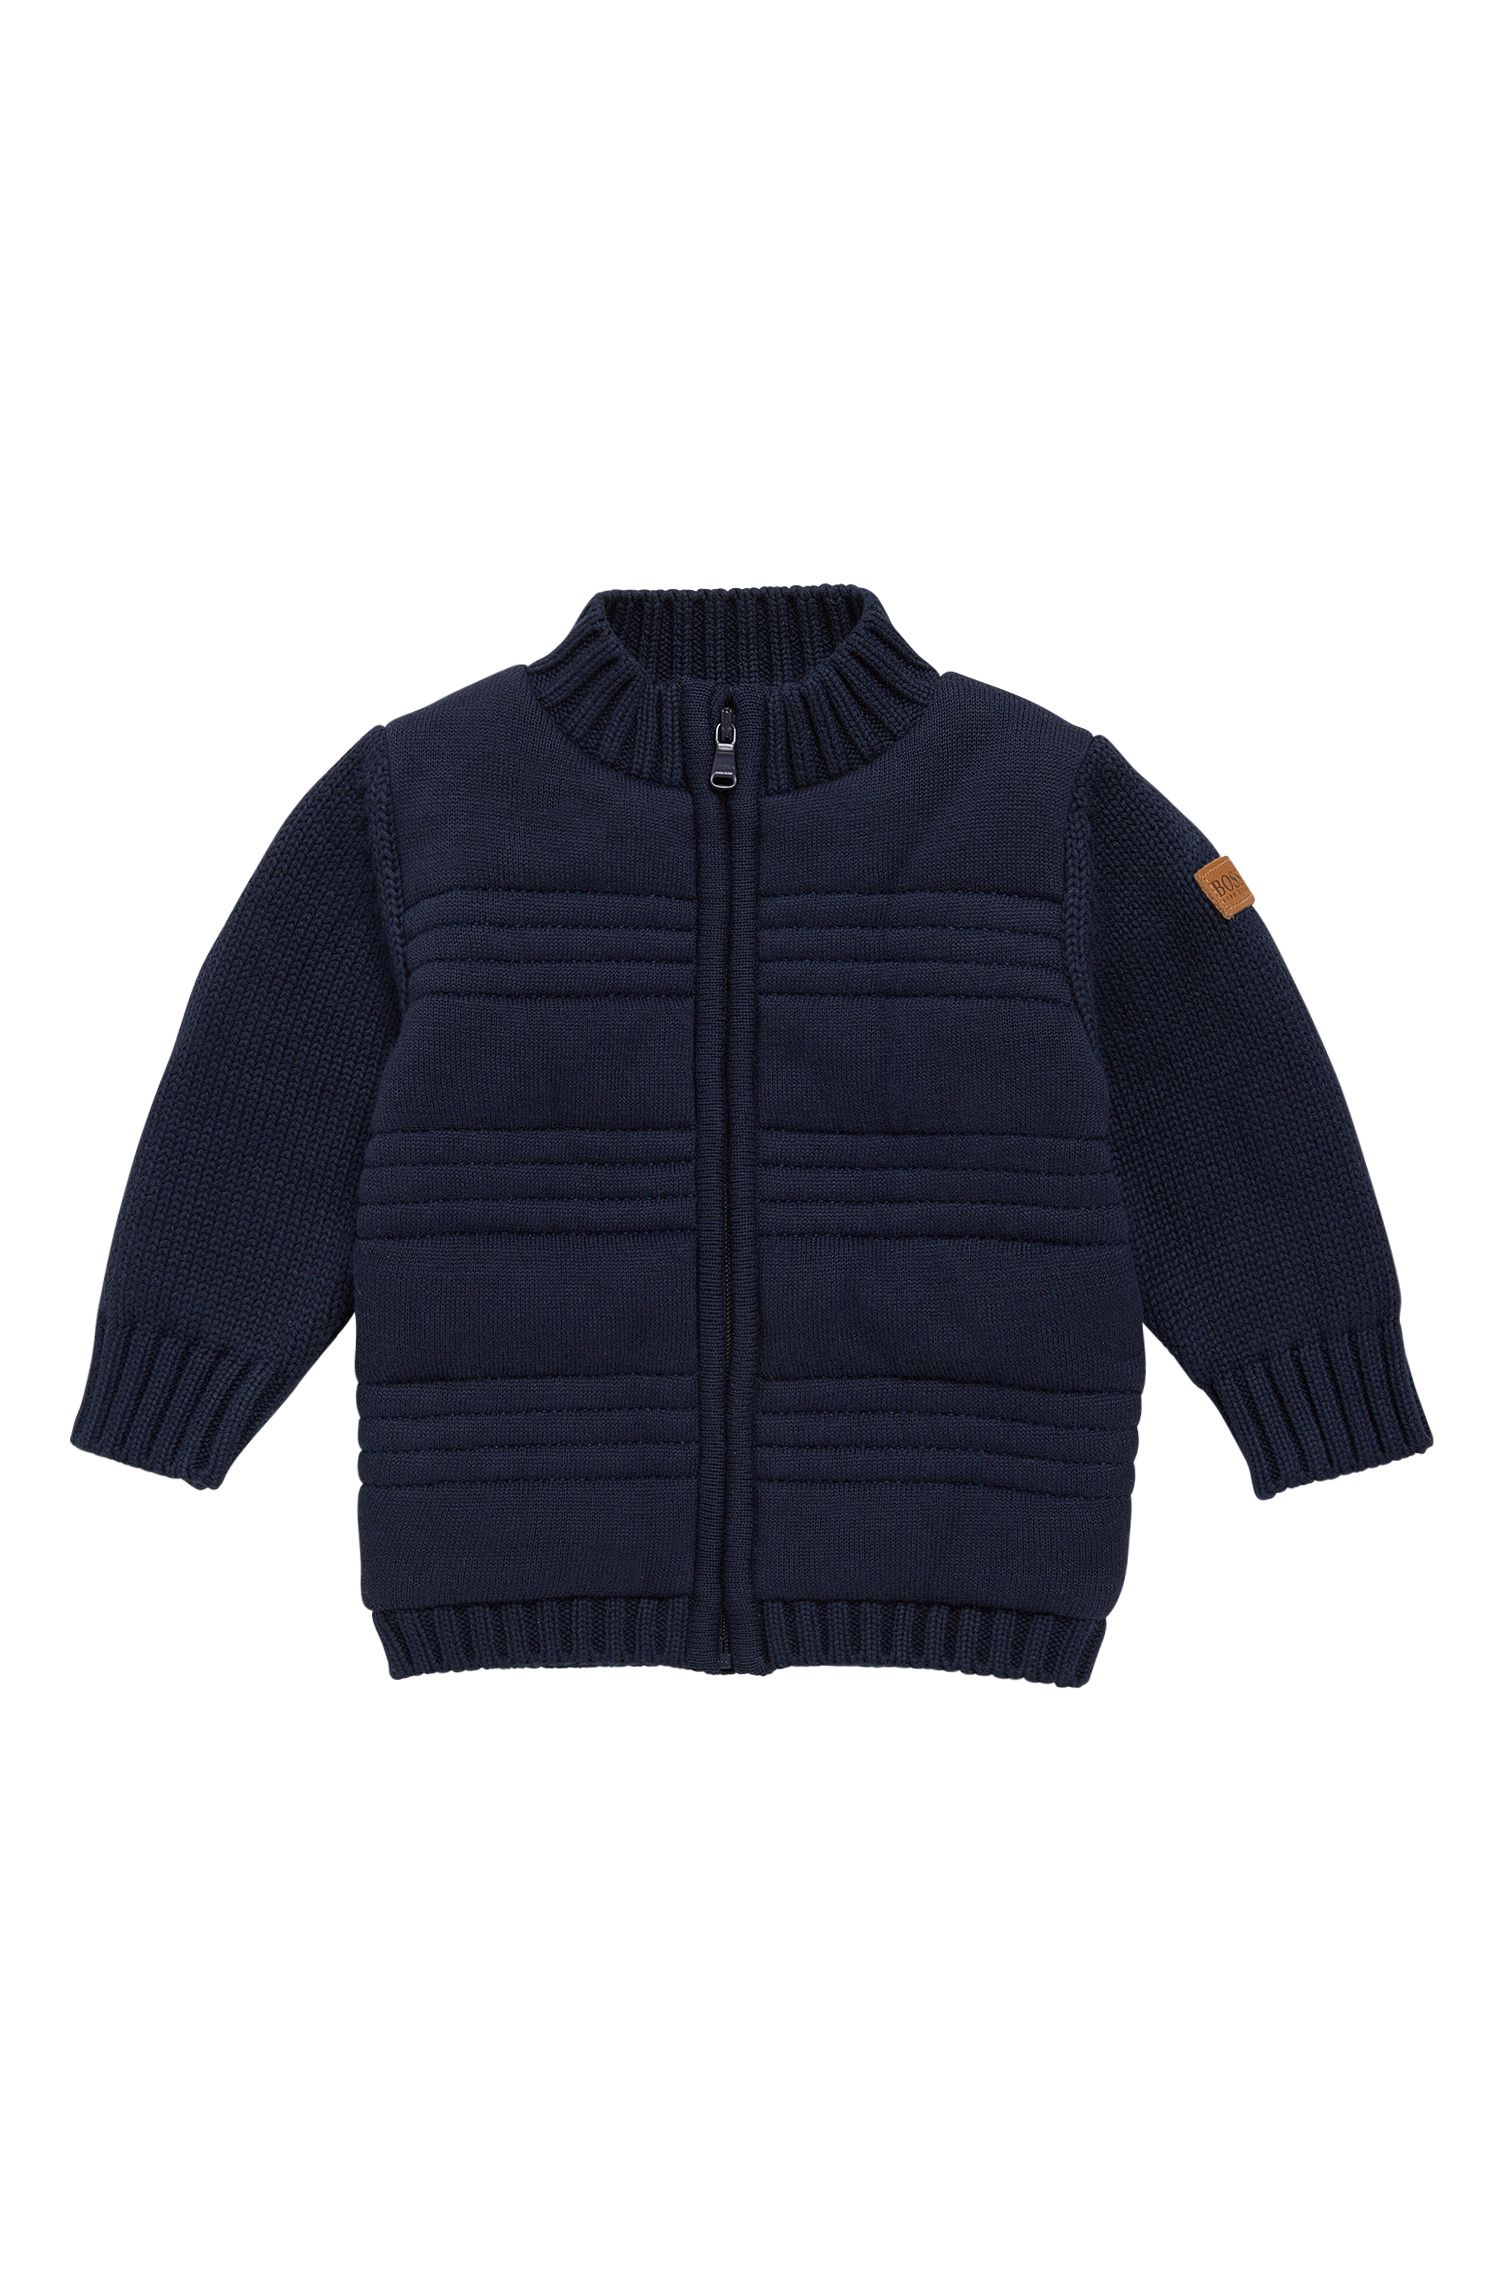 Kids' cotton cardigan with lined front: 'J05522'